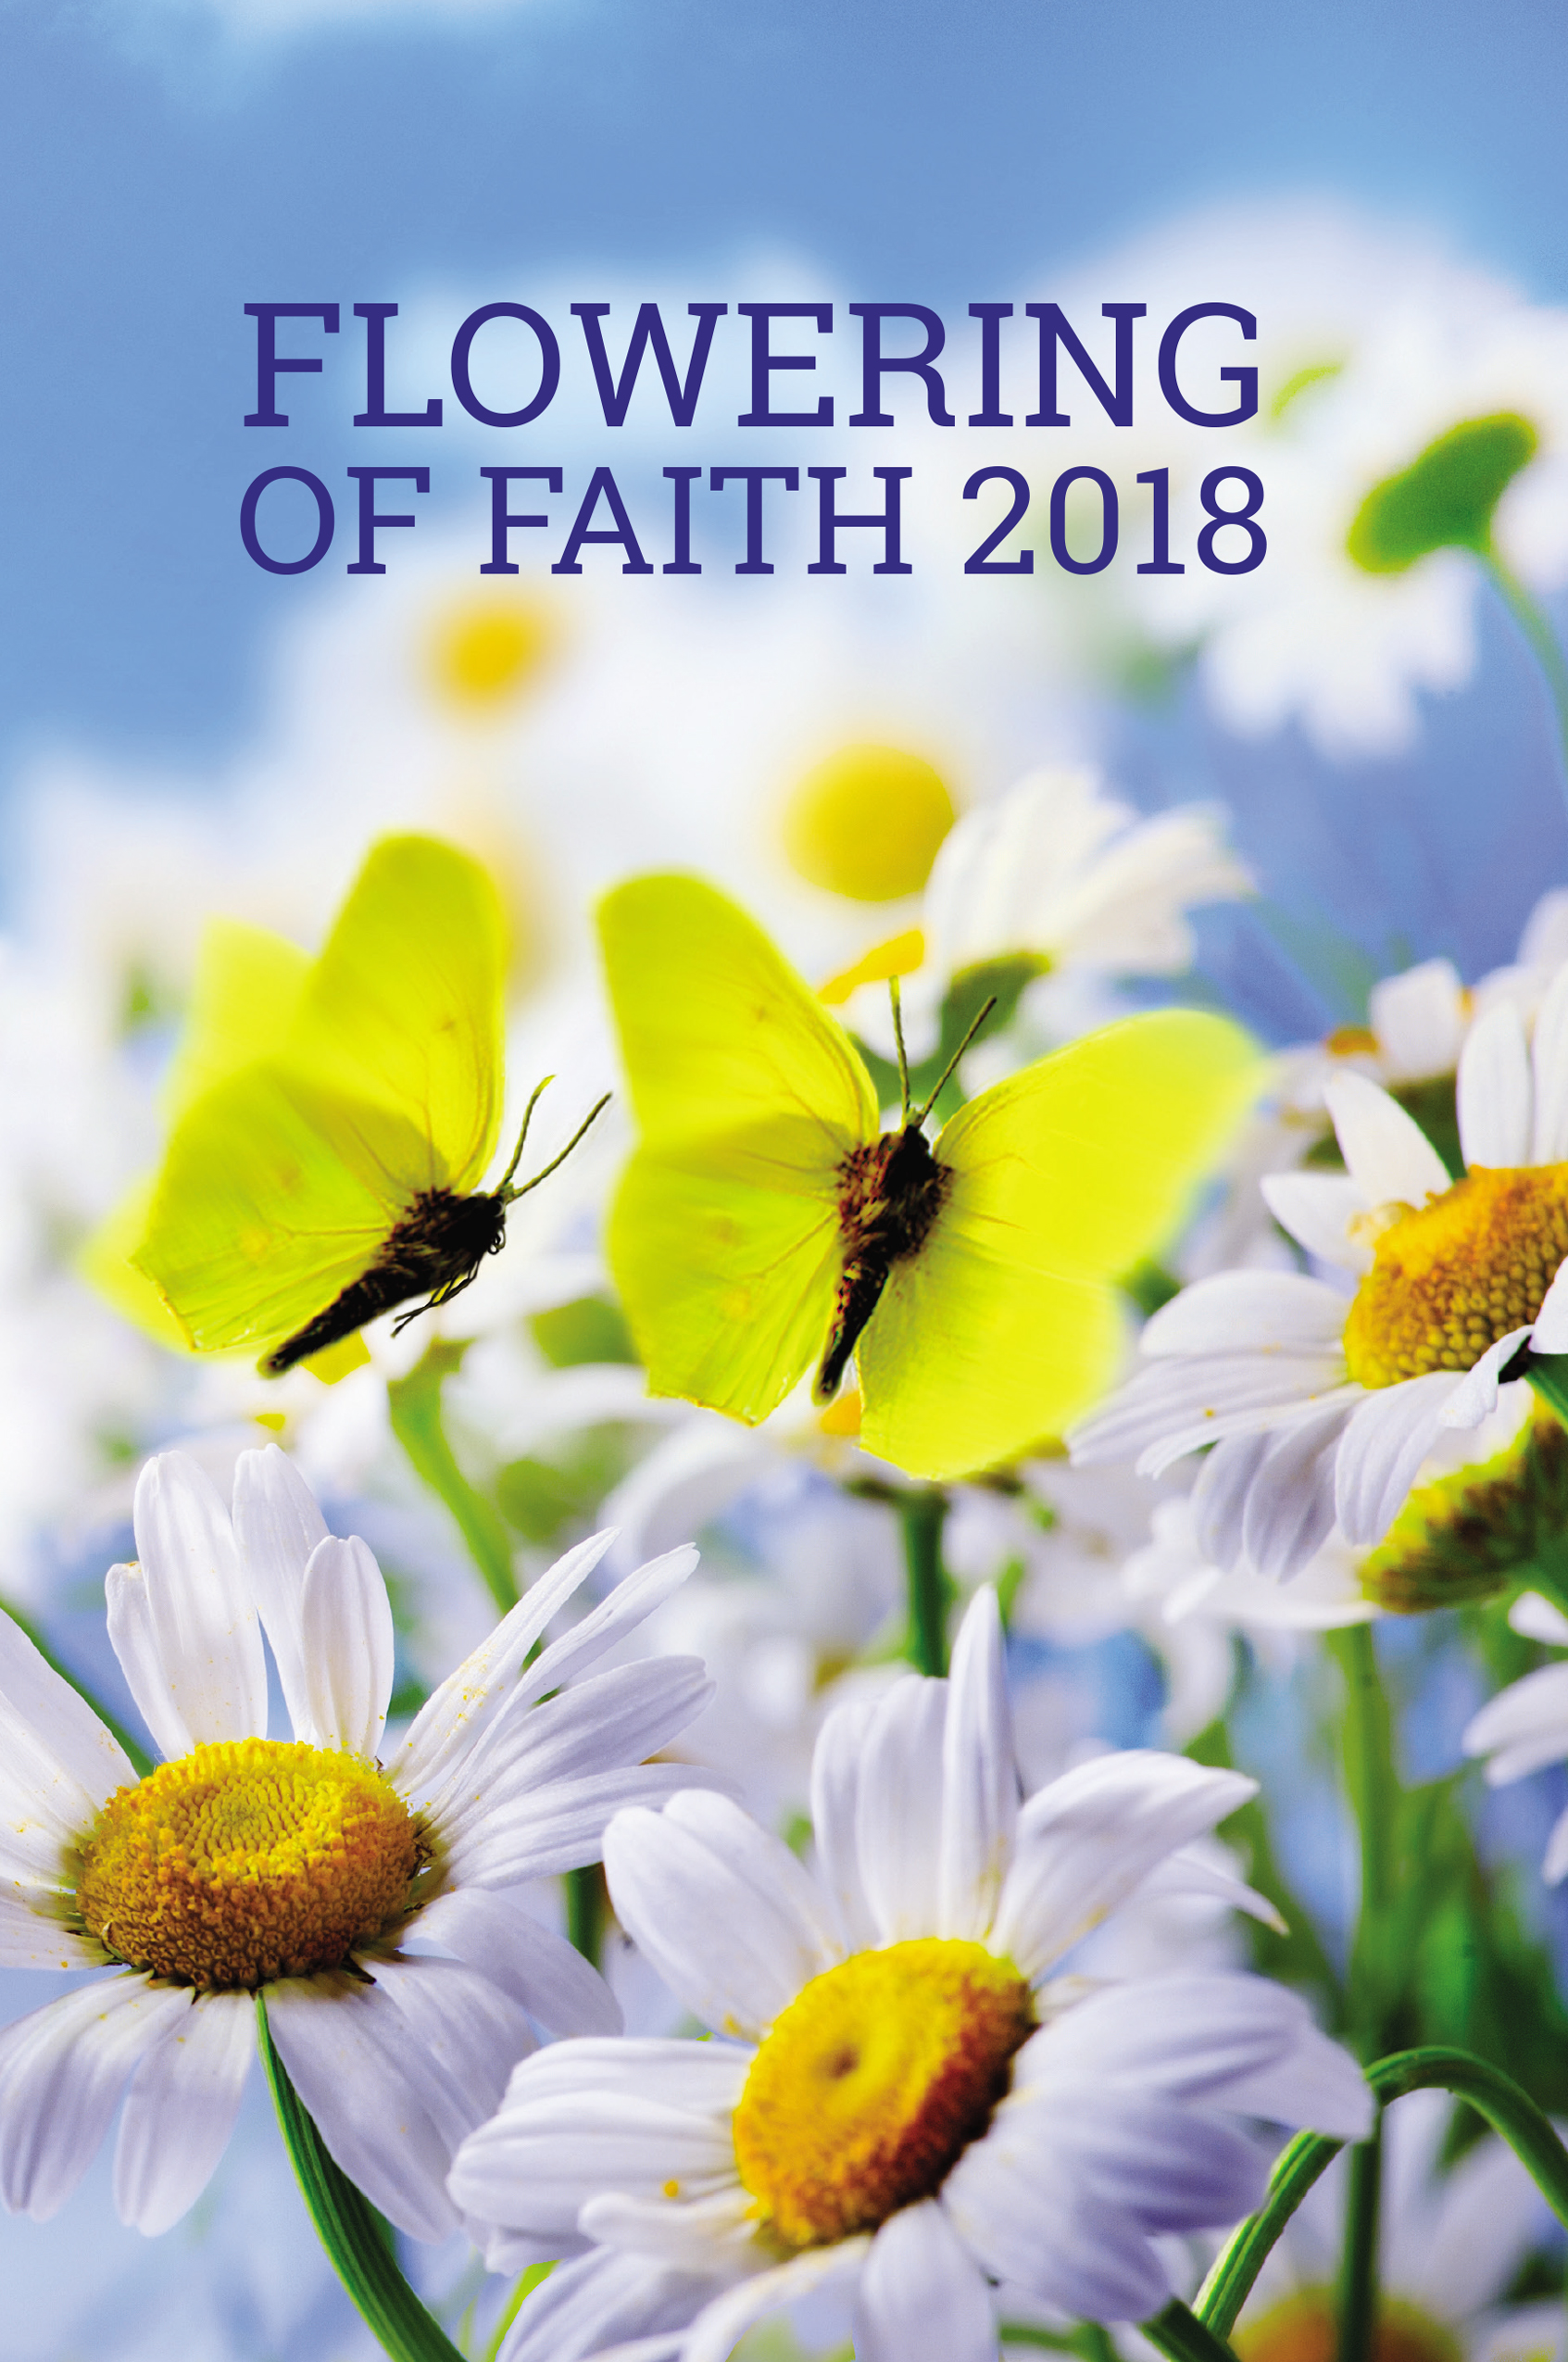 Flowering of Faith 2018